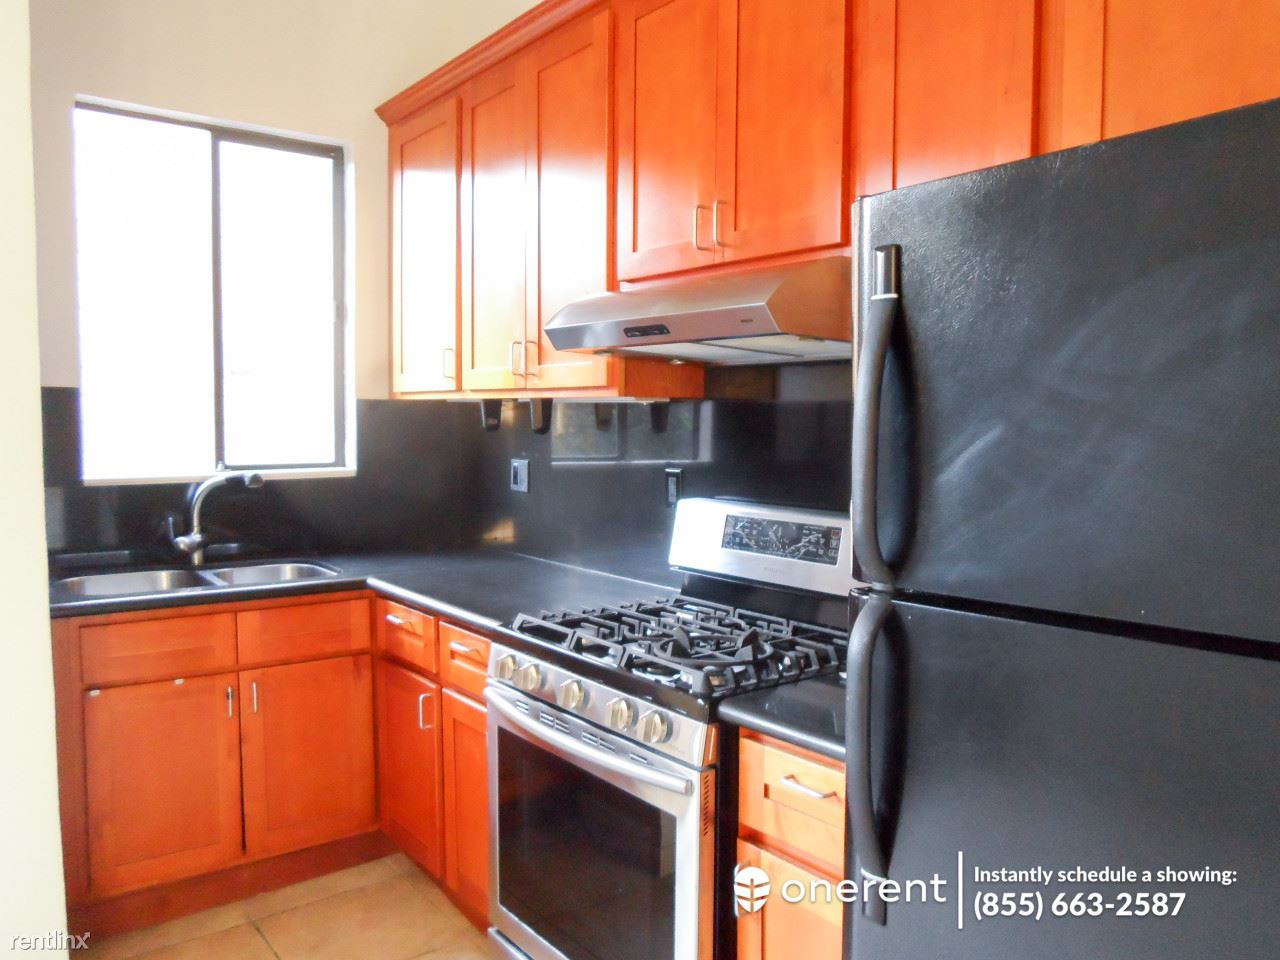 House for Rent in San Francisco